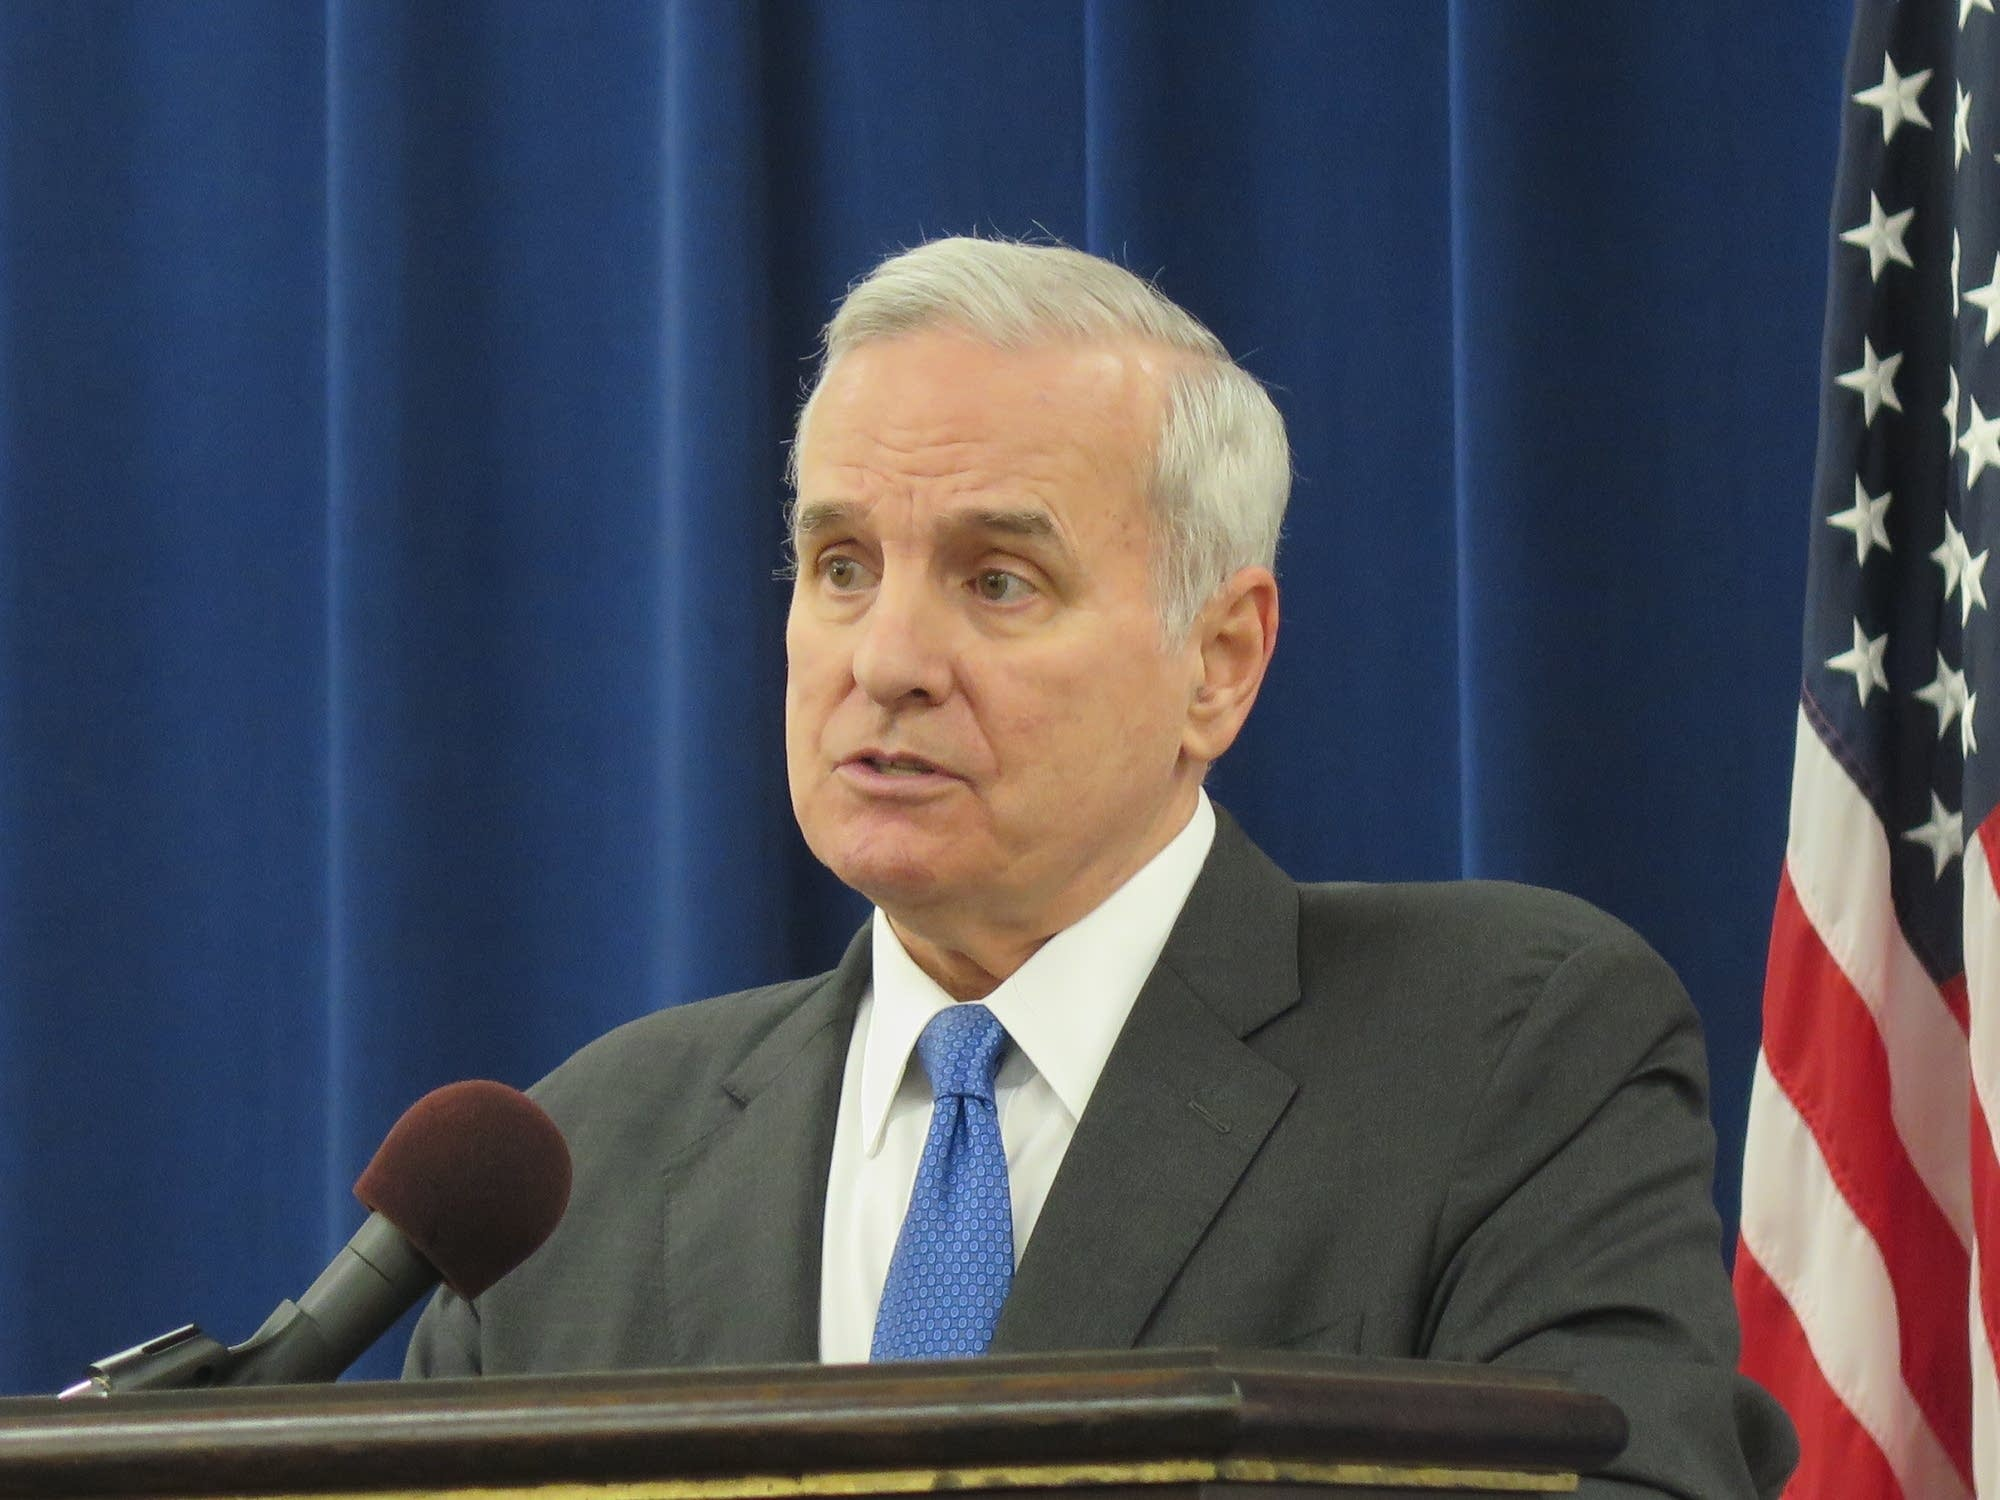 DFL Gov. Mark Dayton